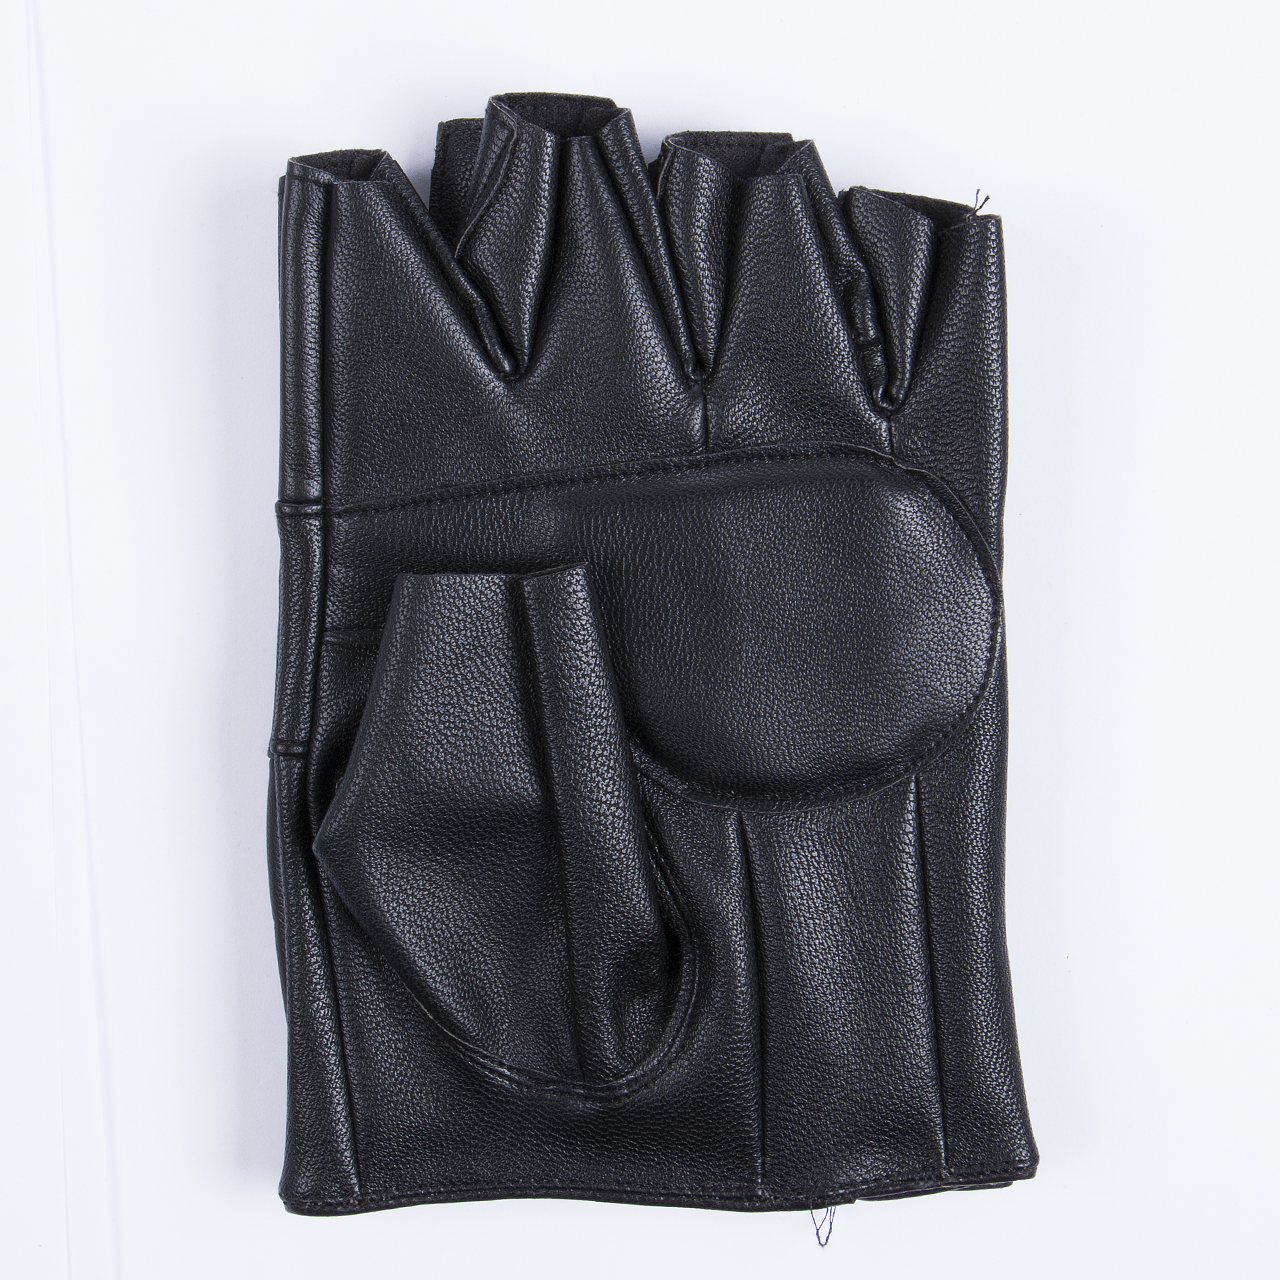 Fingerless gloves climbing - Men S Pu Leather Gloves Half Finger Fingerless Gloves Climbing Bicycle Anti Skid Fitness Workout Gym Training Gloves Sw55 In Gloves Mittens From Men S